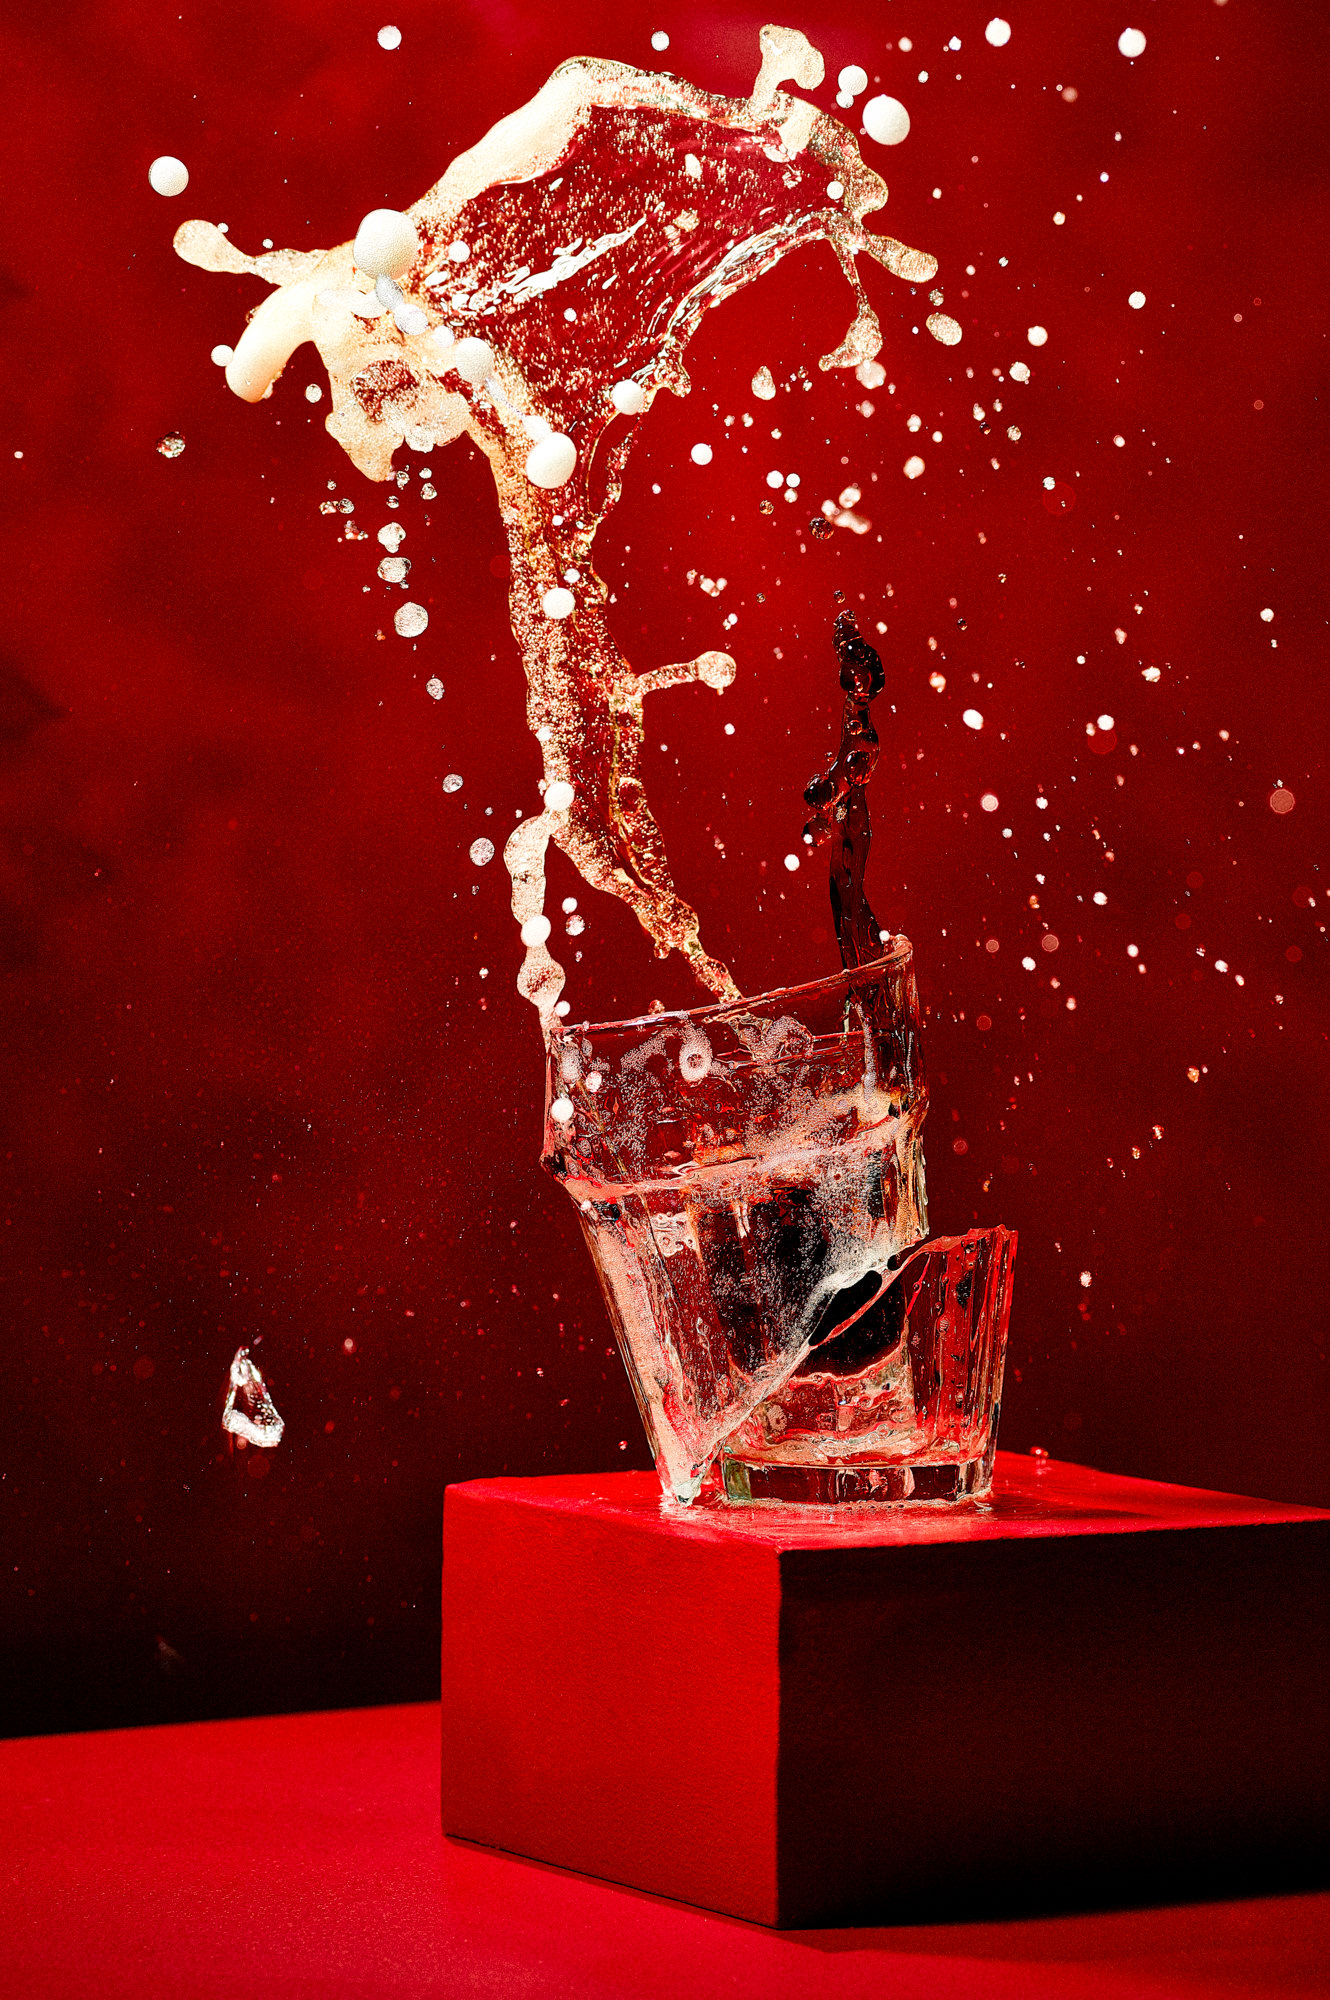 Photograph of Jaegerbomb drink smashing a glass